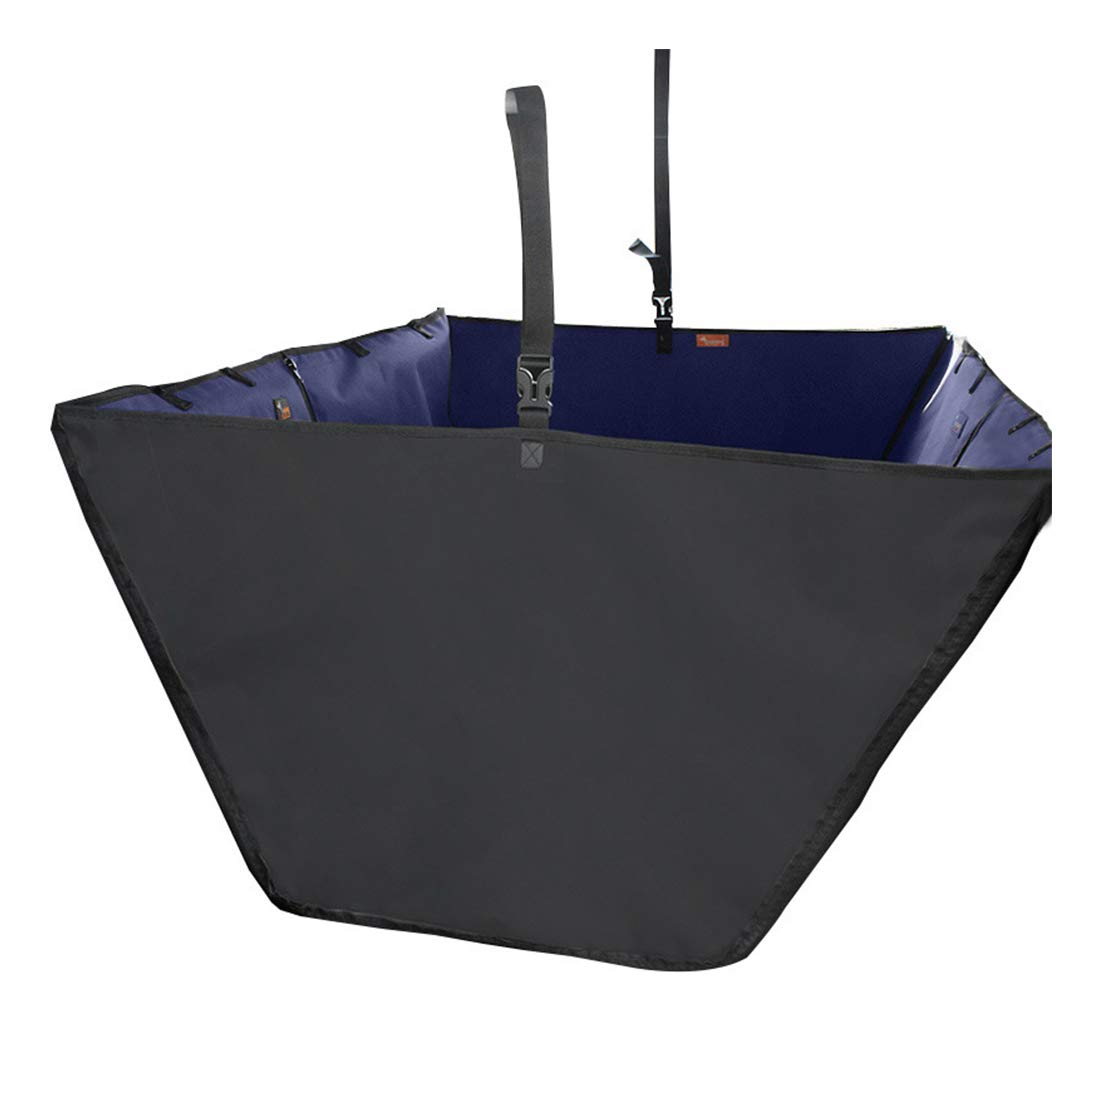 Navy bluee Thick 145X130X50cm Navy bluee Thick 145X130X50cm FELICIPP Dog Car Mat Waterproof And Dirty Car Dog Pad Pet Travel Supplies (color   Navy bluee thick, Size   145X130X50cm)